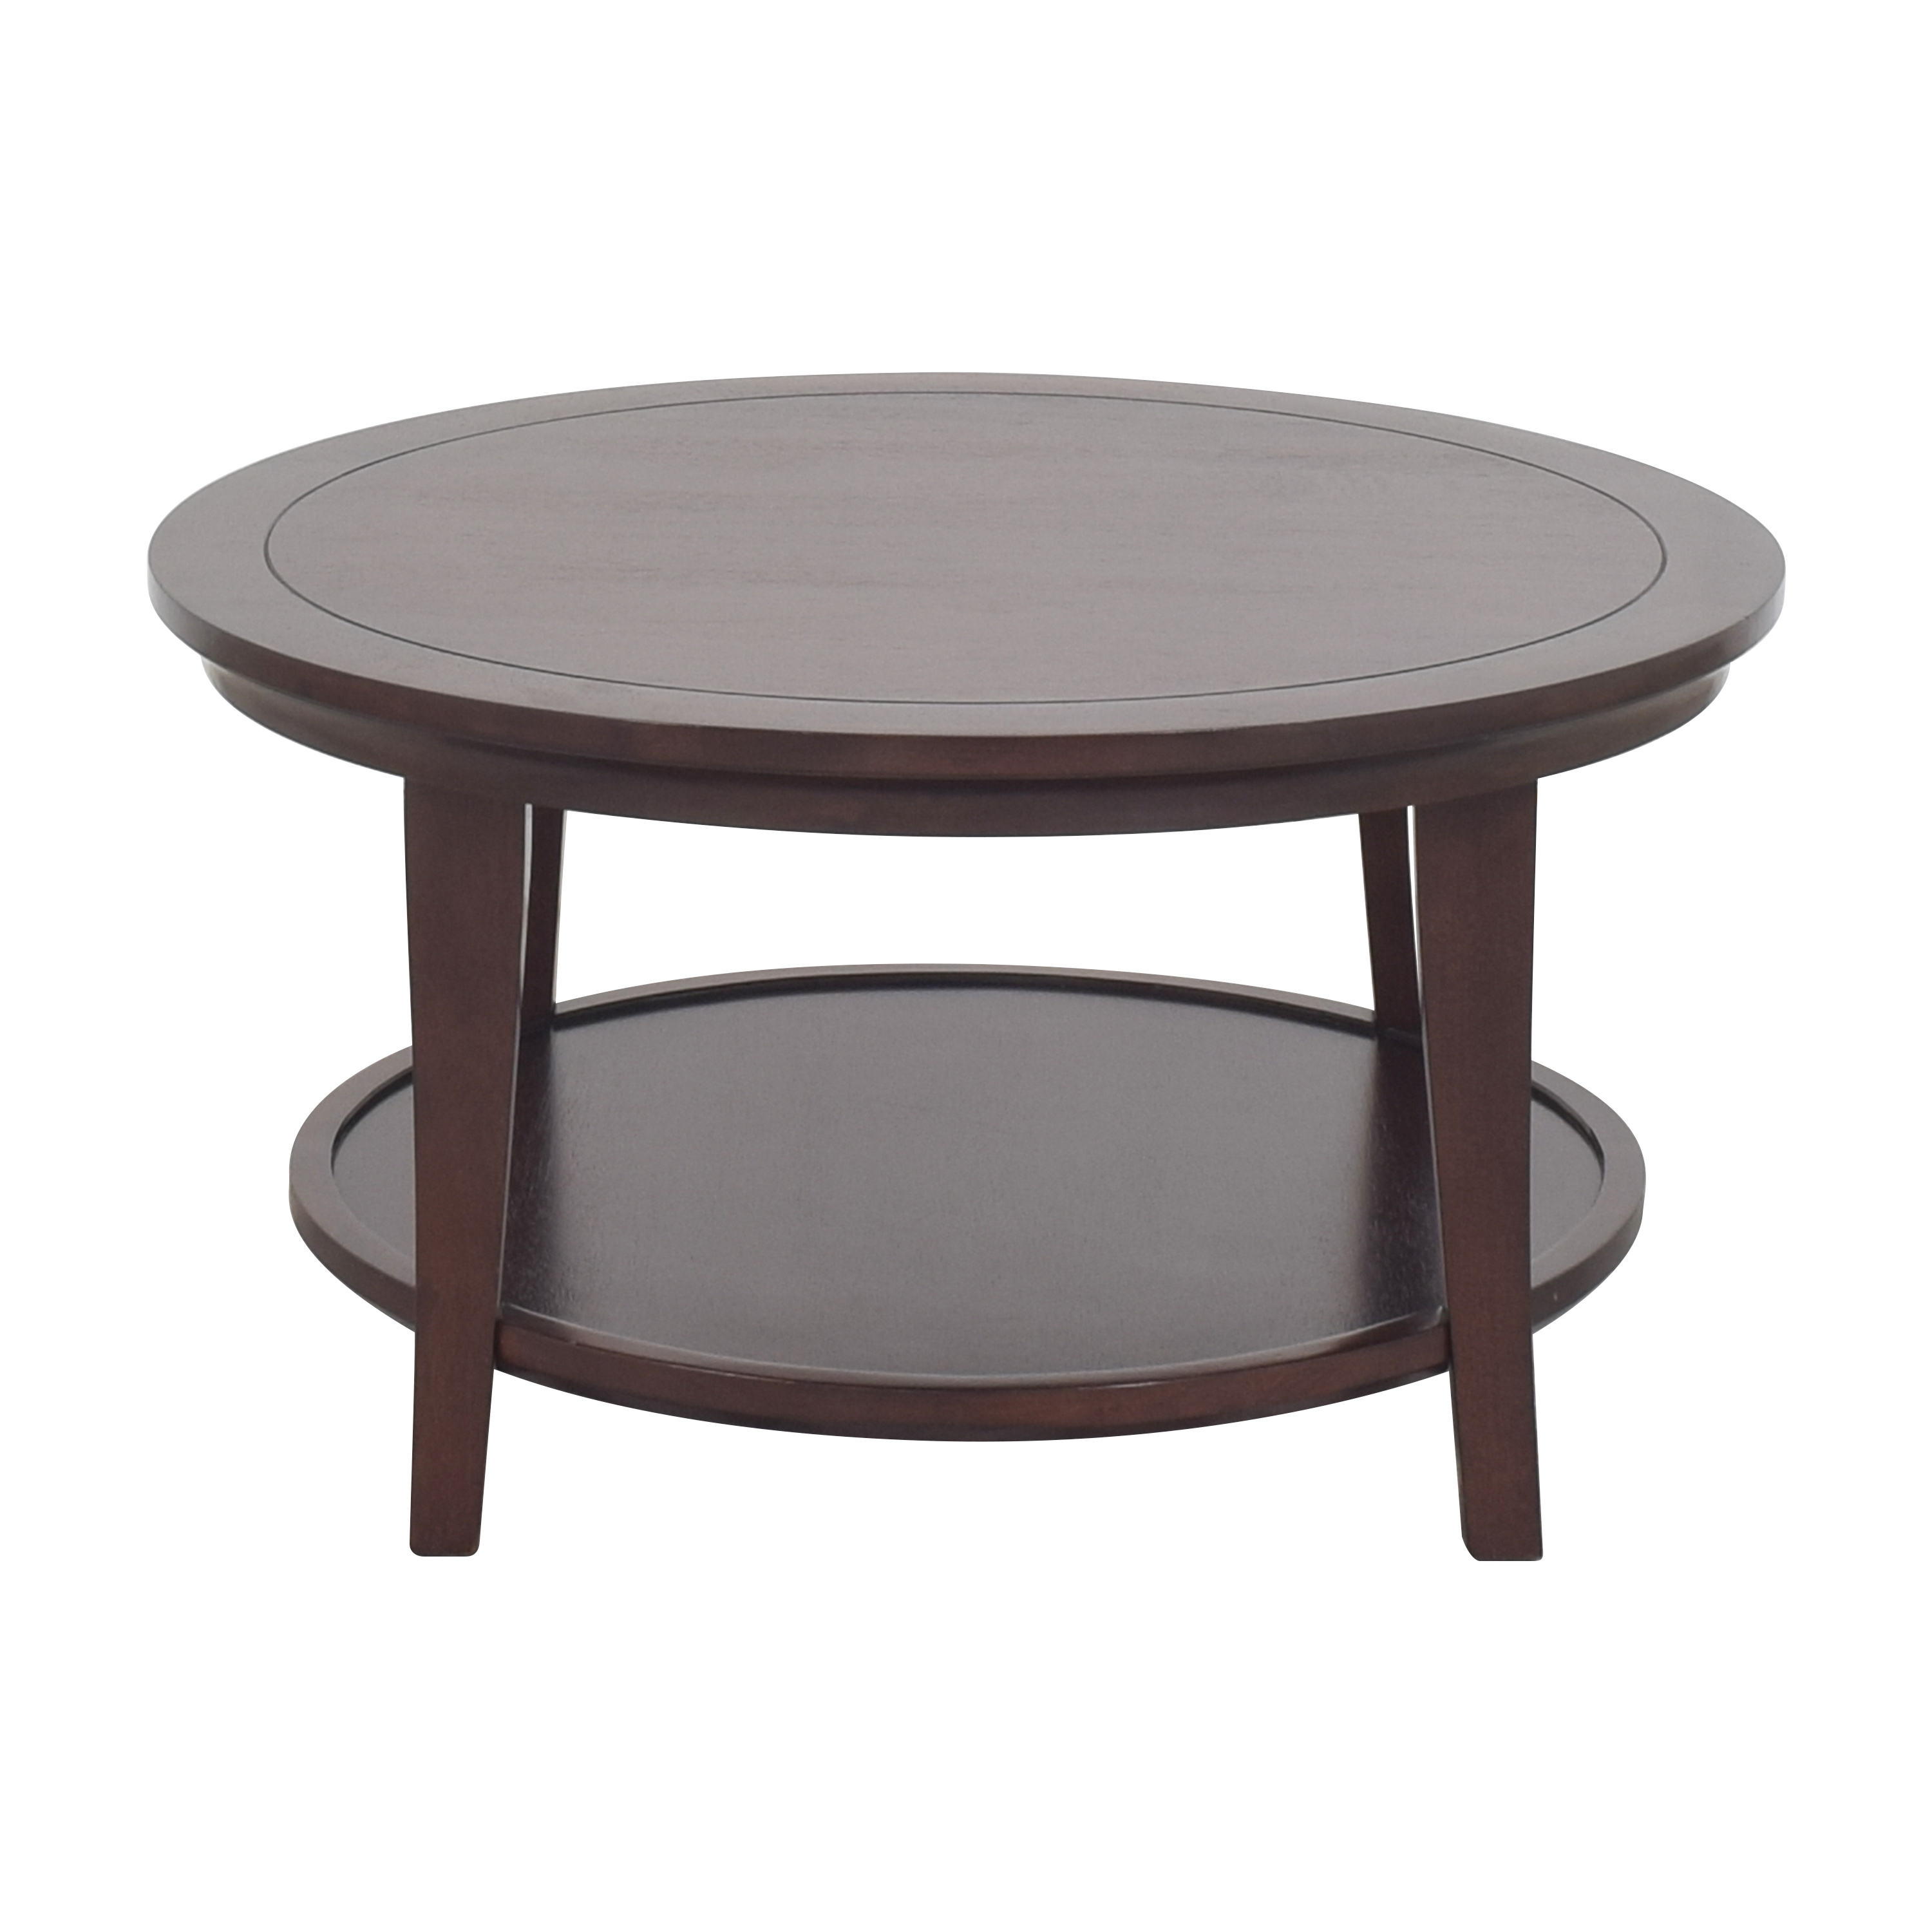 Pottery Barn Pottery Barn Metropolitan Round Coffee Table price